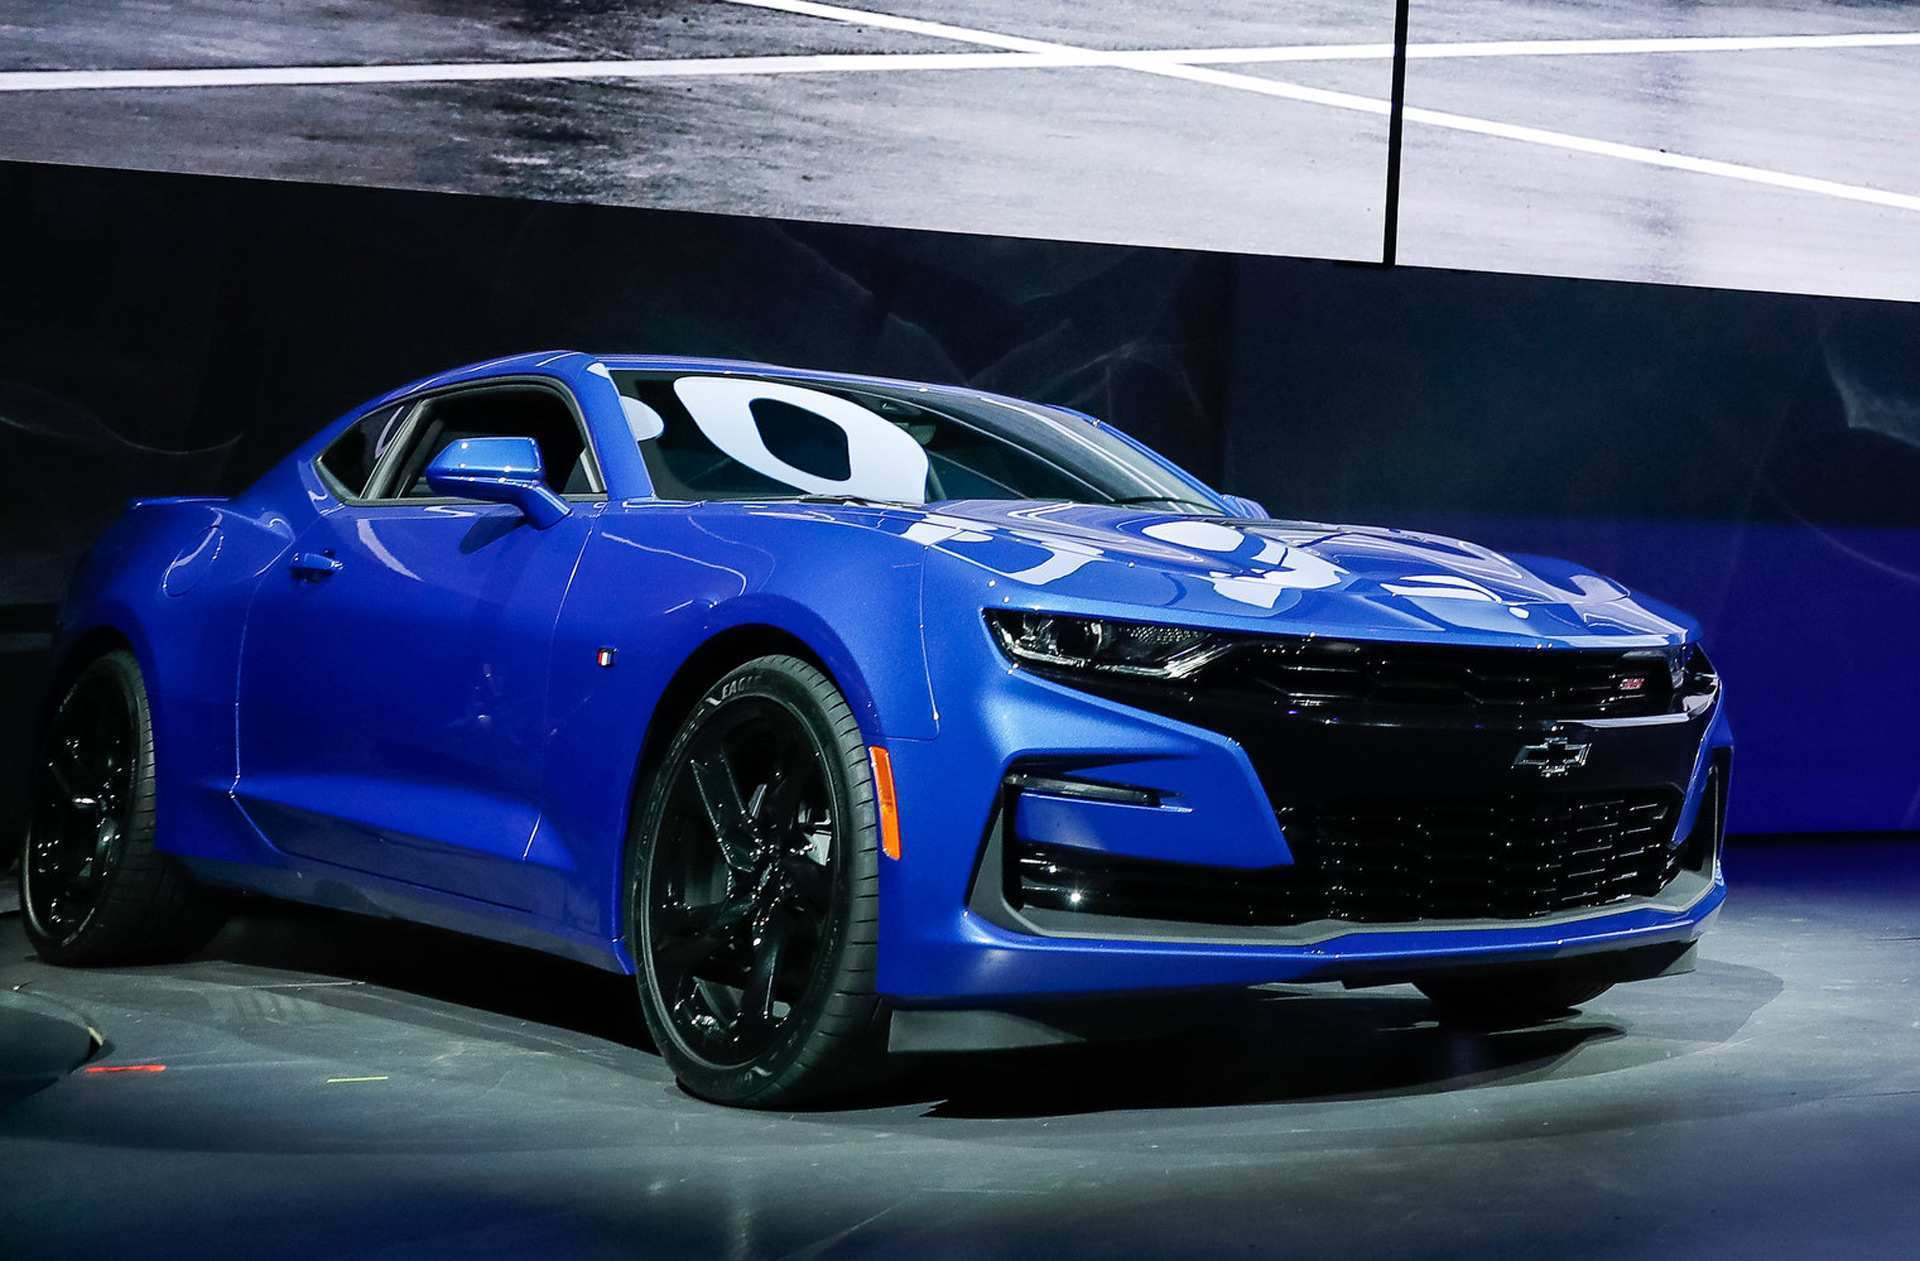 59 A Chevrolet Camaro 2020 Pictures Price Design And Review